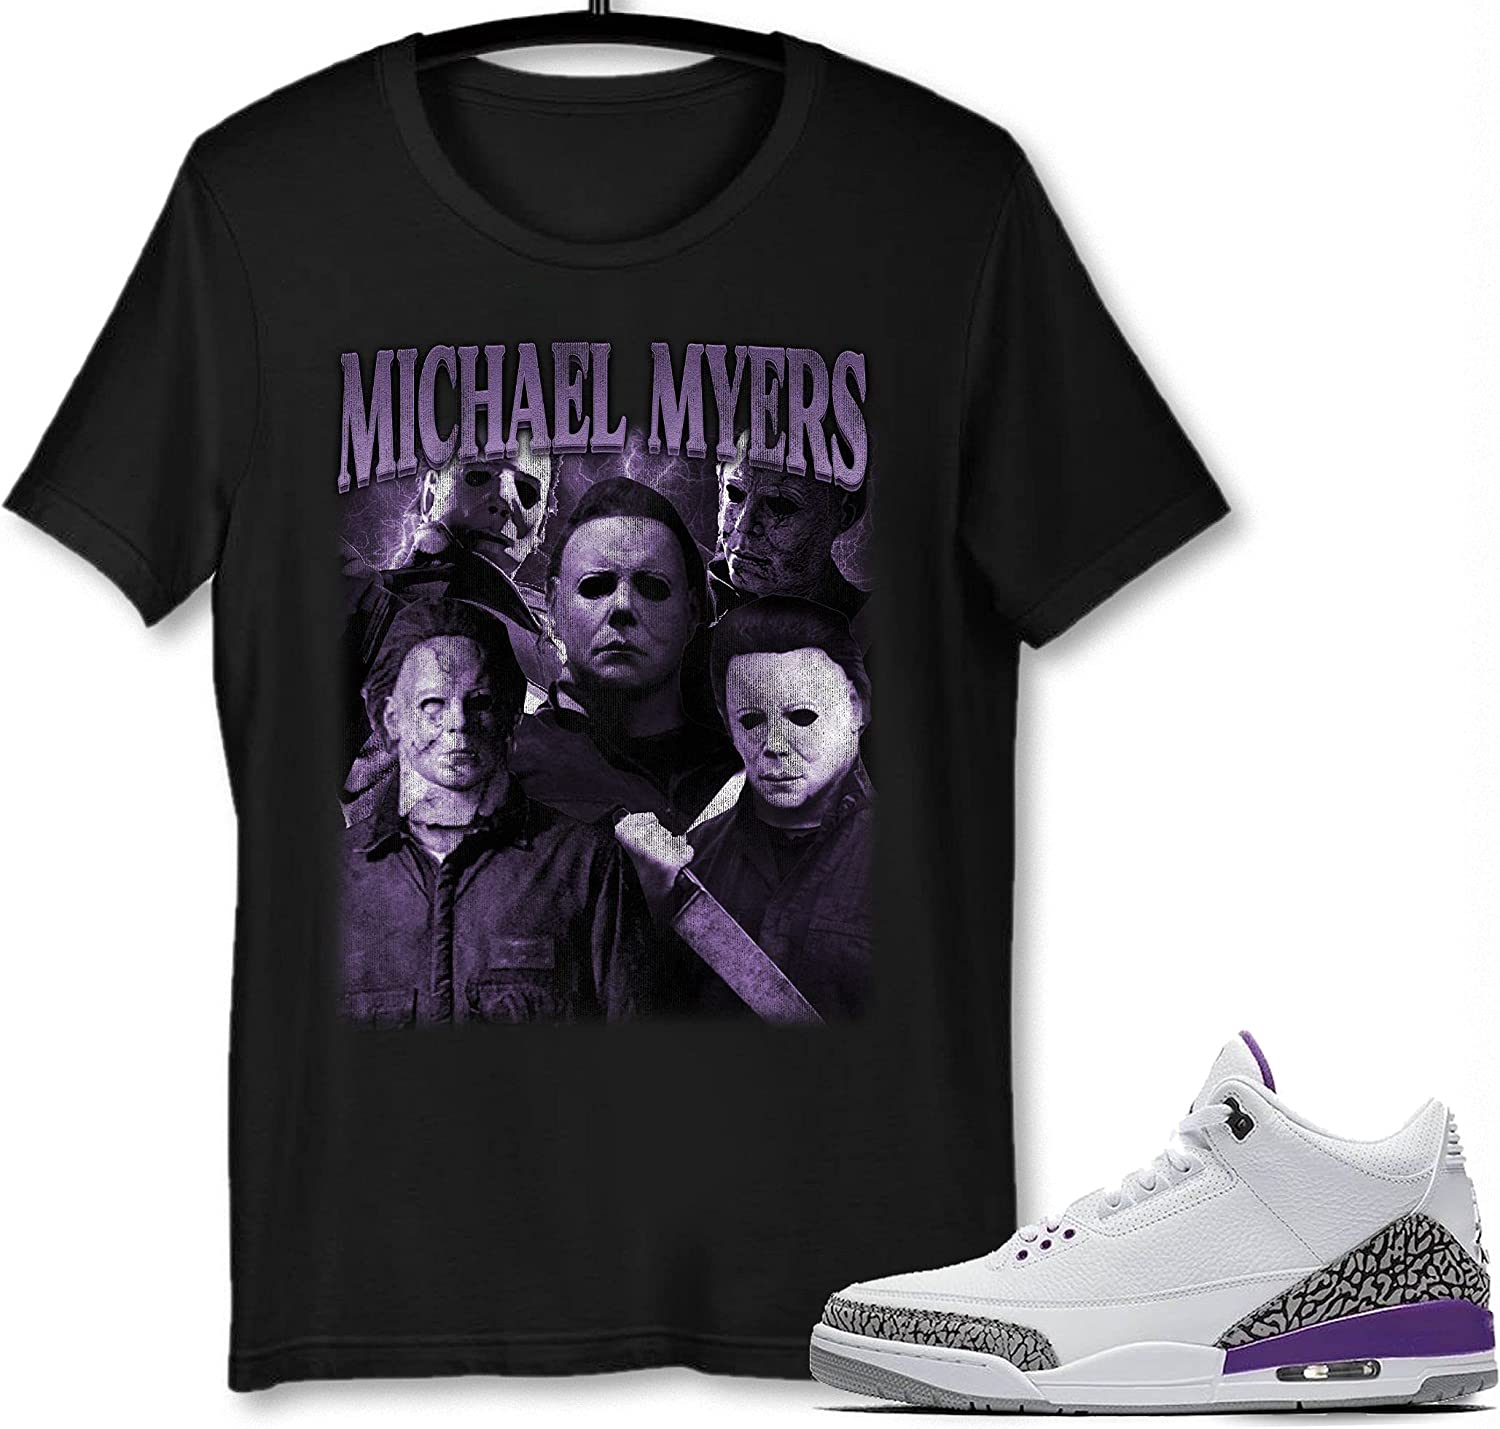 #Michael #Myer T-Shirt to Clearance SALE Limited time Match Max 88% OFF Jordan Violet Snkr Ore 3 Sneaker